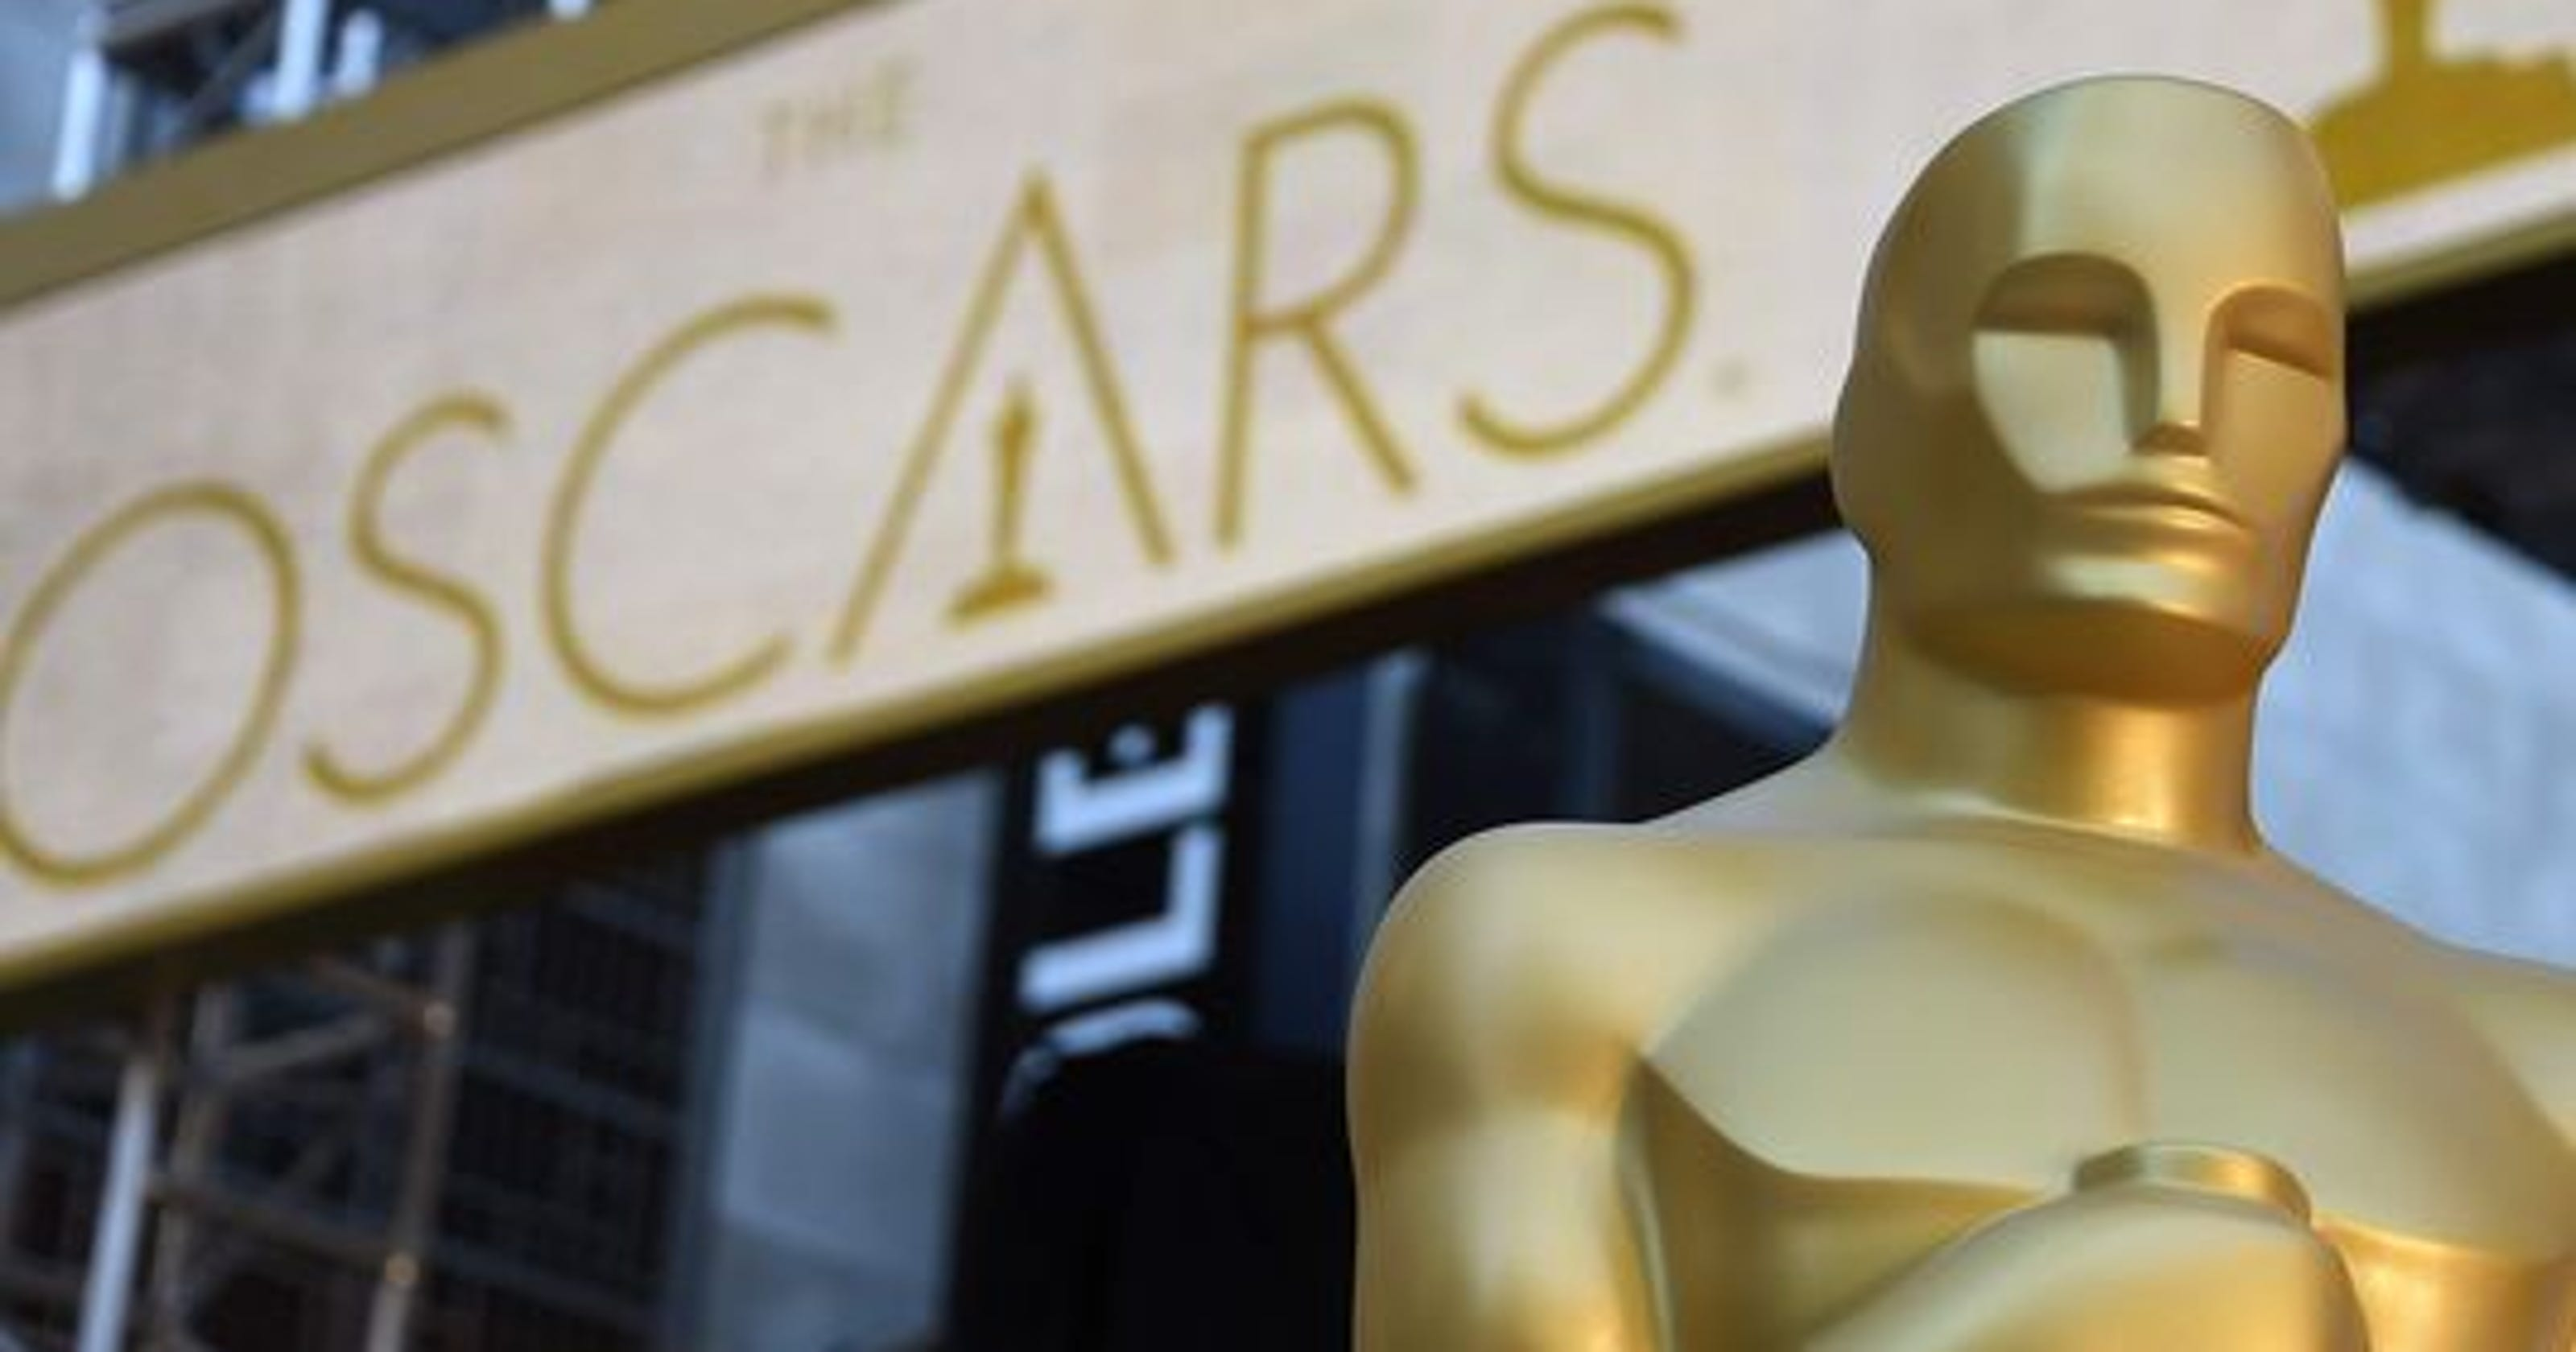 dd2609f2142 The best tweets from Oscars 2017